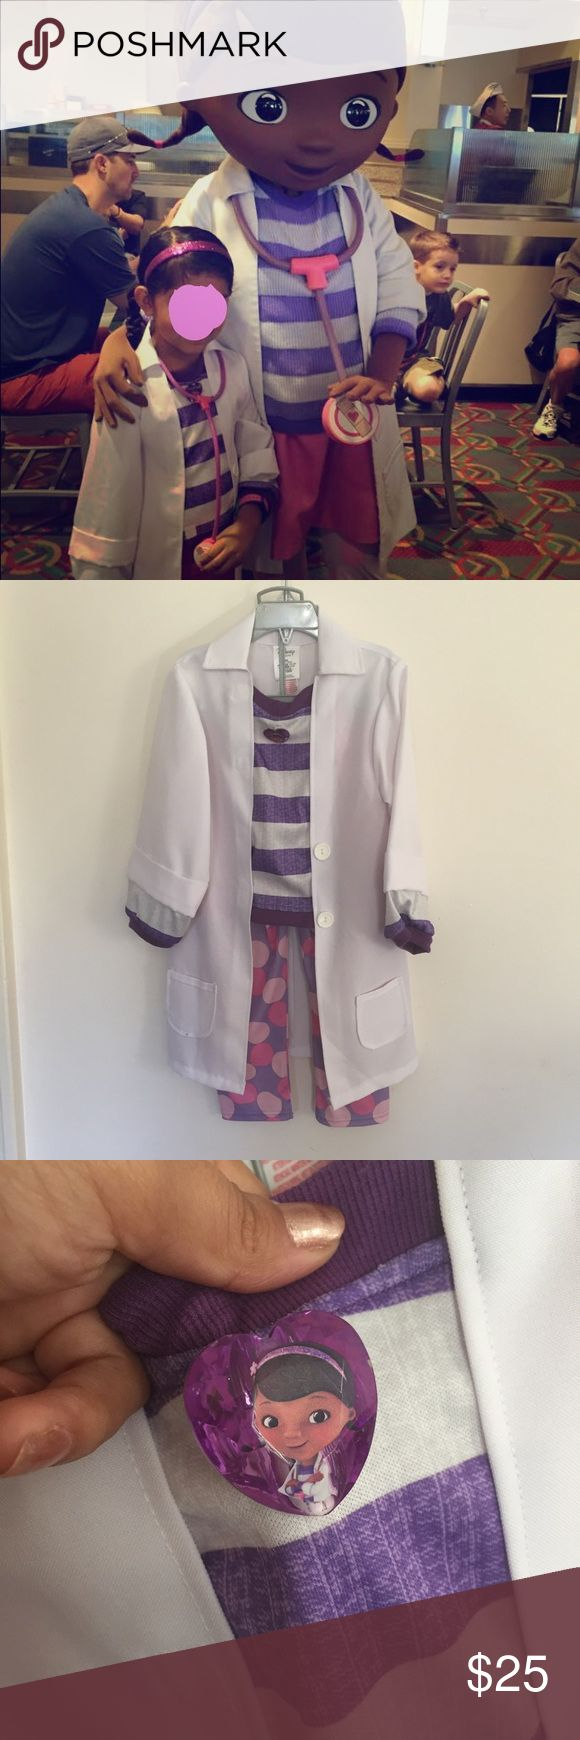 Disney Doc McStuffins costume Like new no damagesfromdisney store accesories not available Disney Costumes